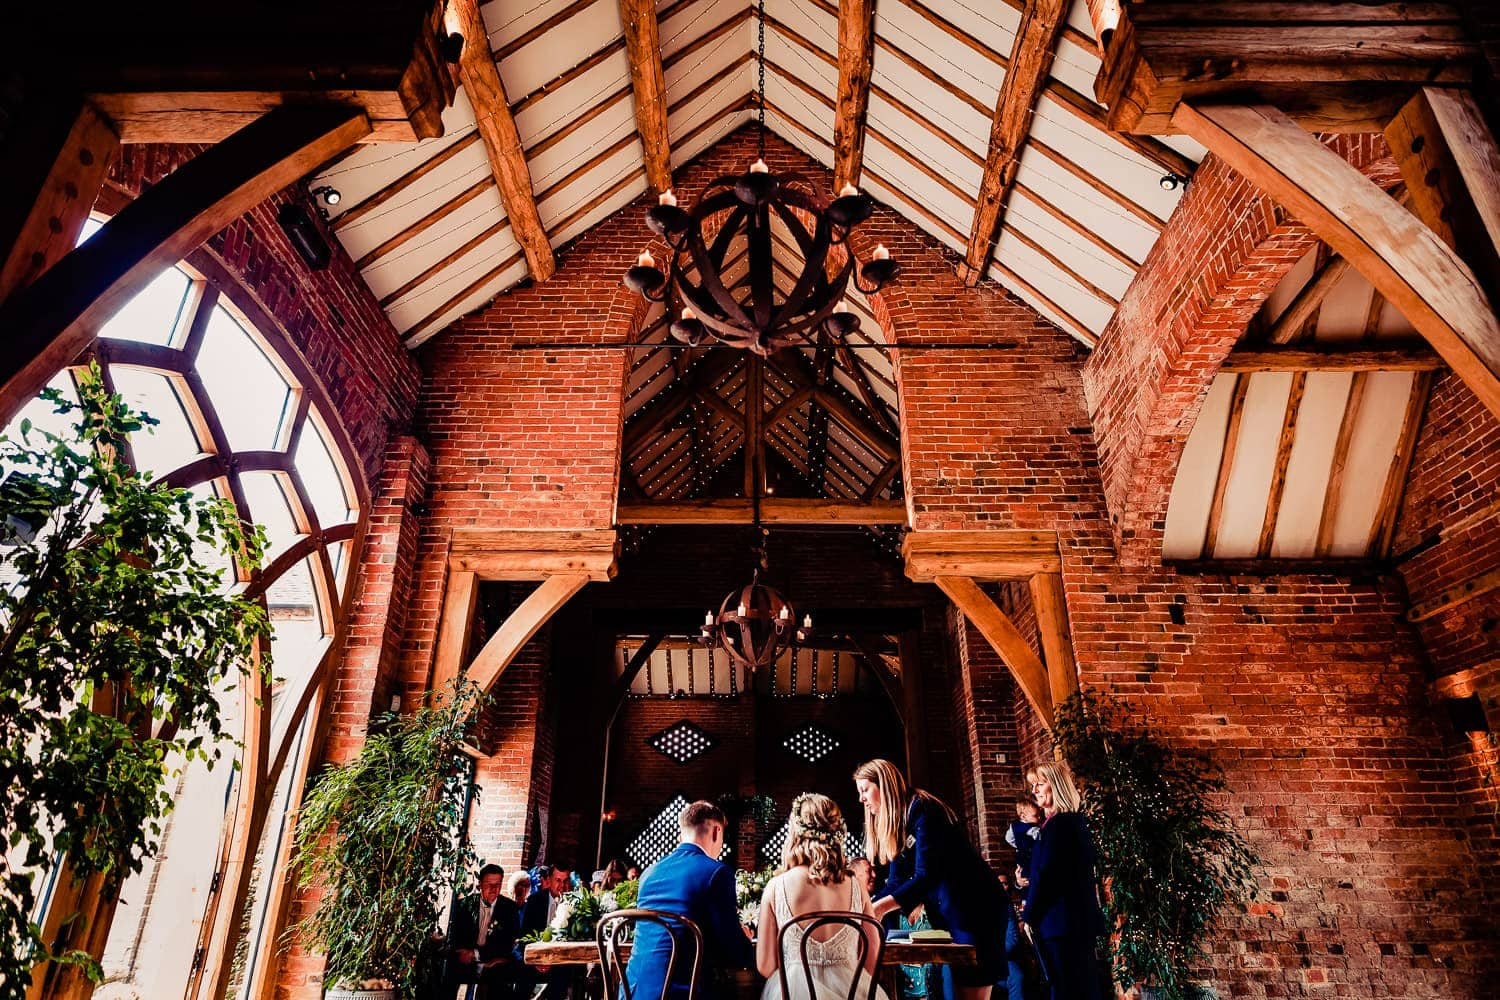 shustoke barn rates high in a list of top midlands wedding venues